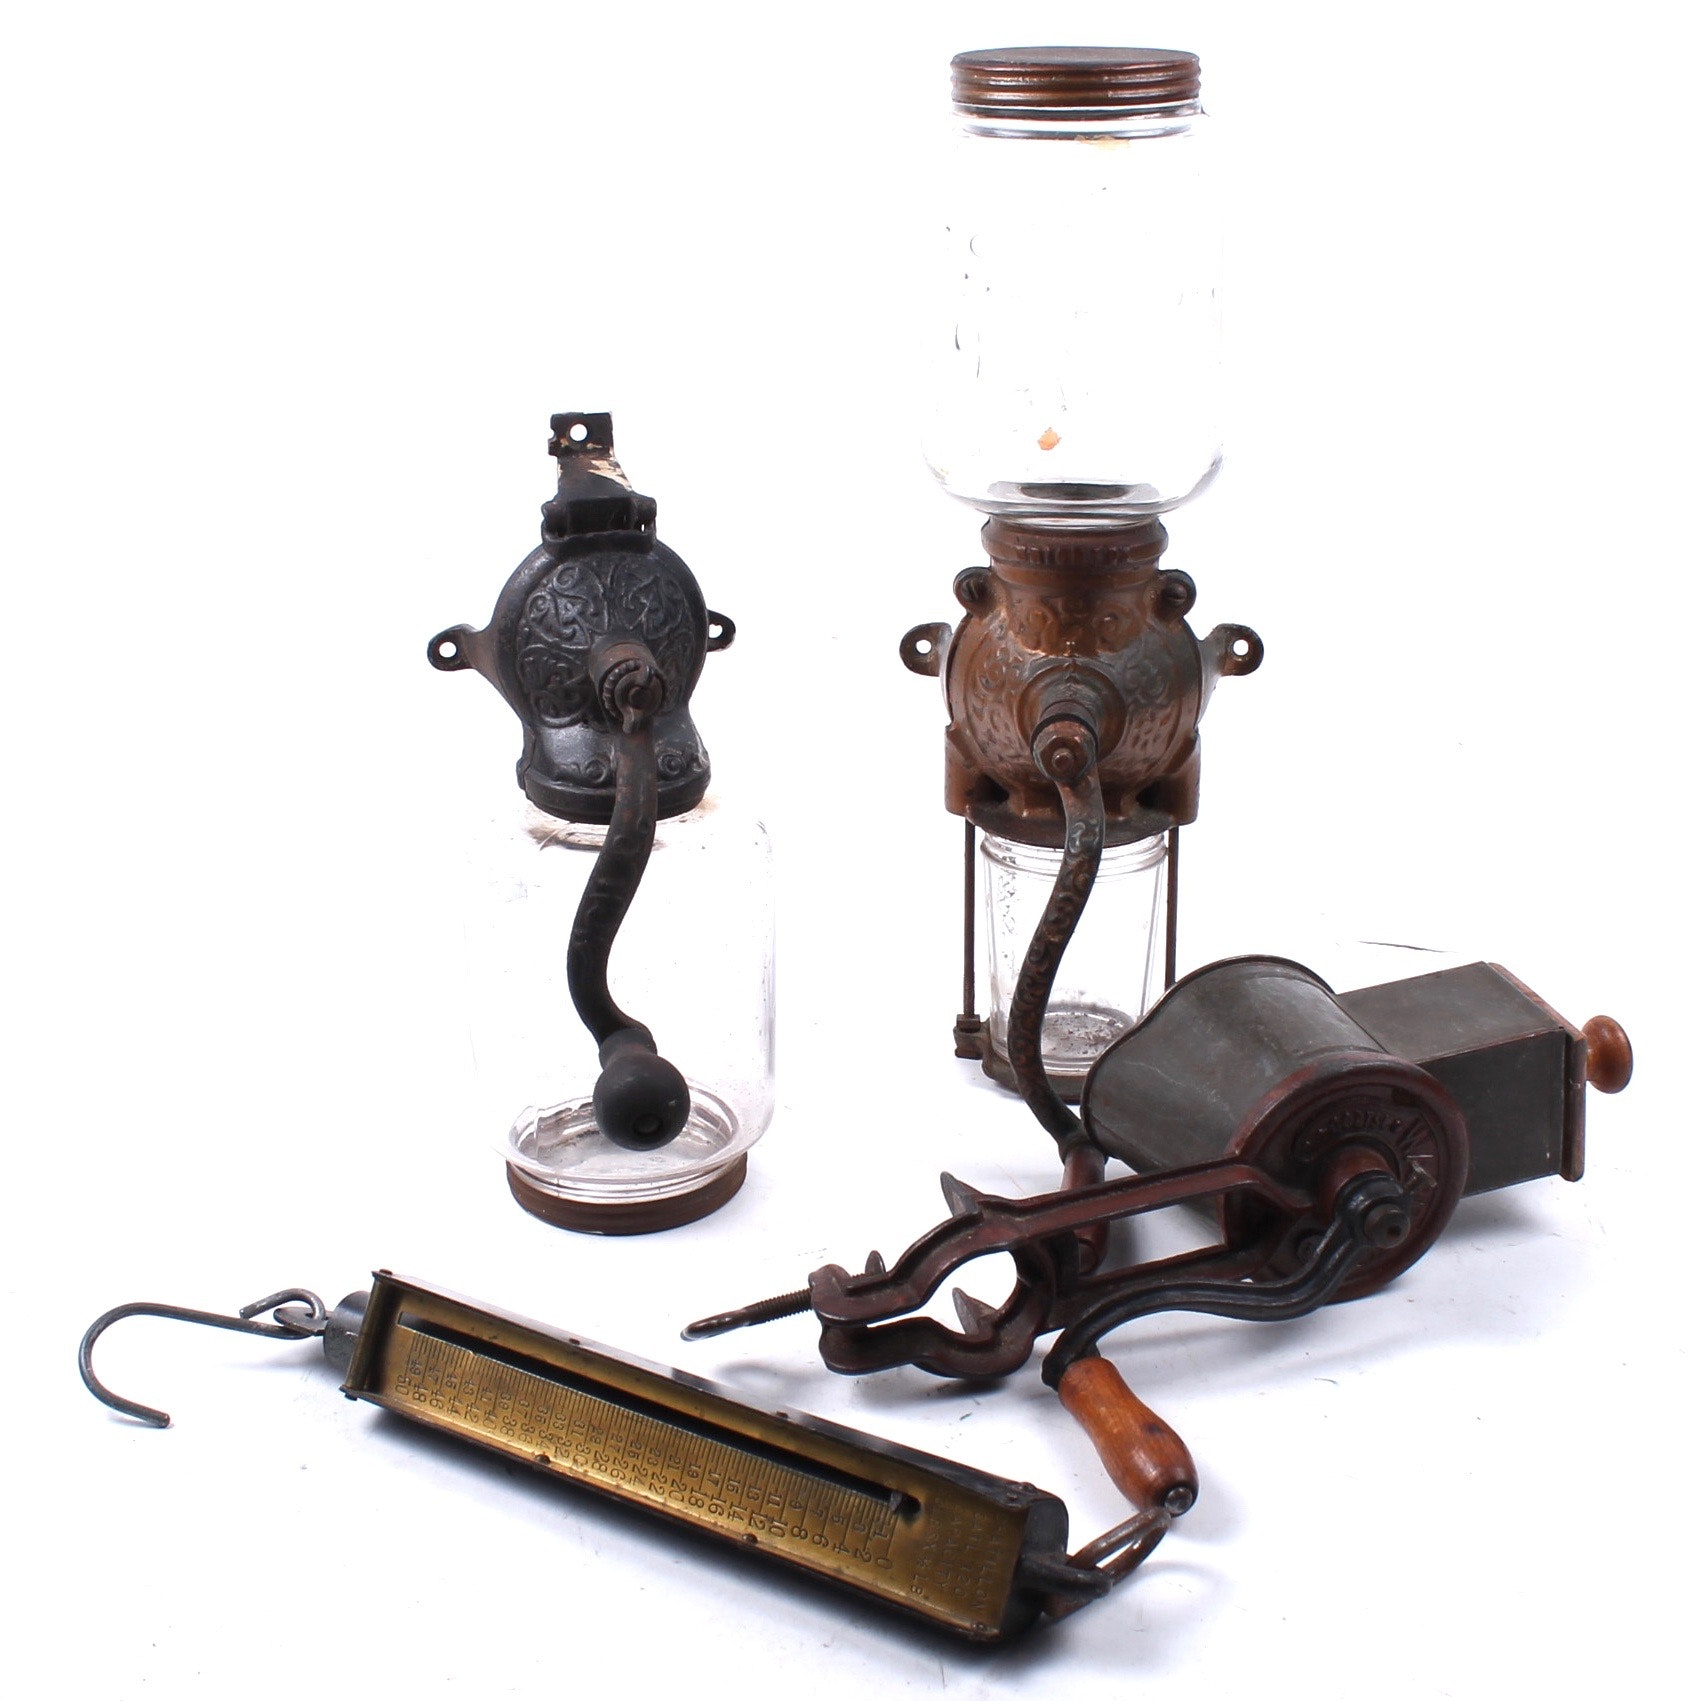 Antique Coffee Grinder, Scale, and Grater